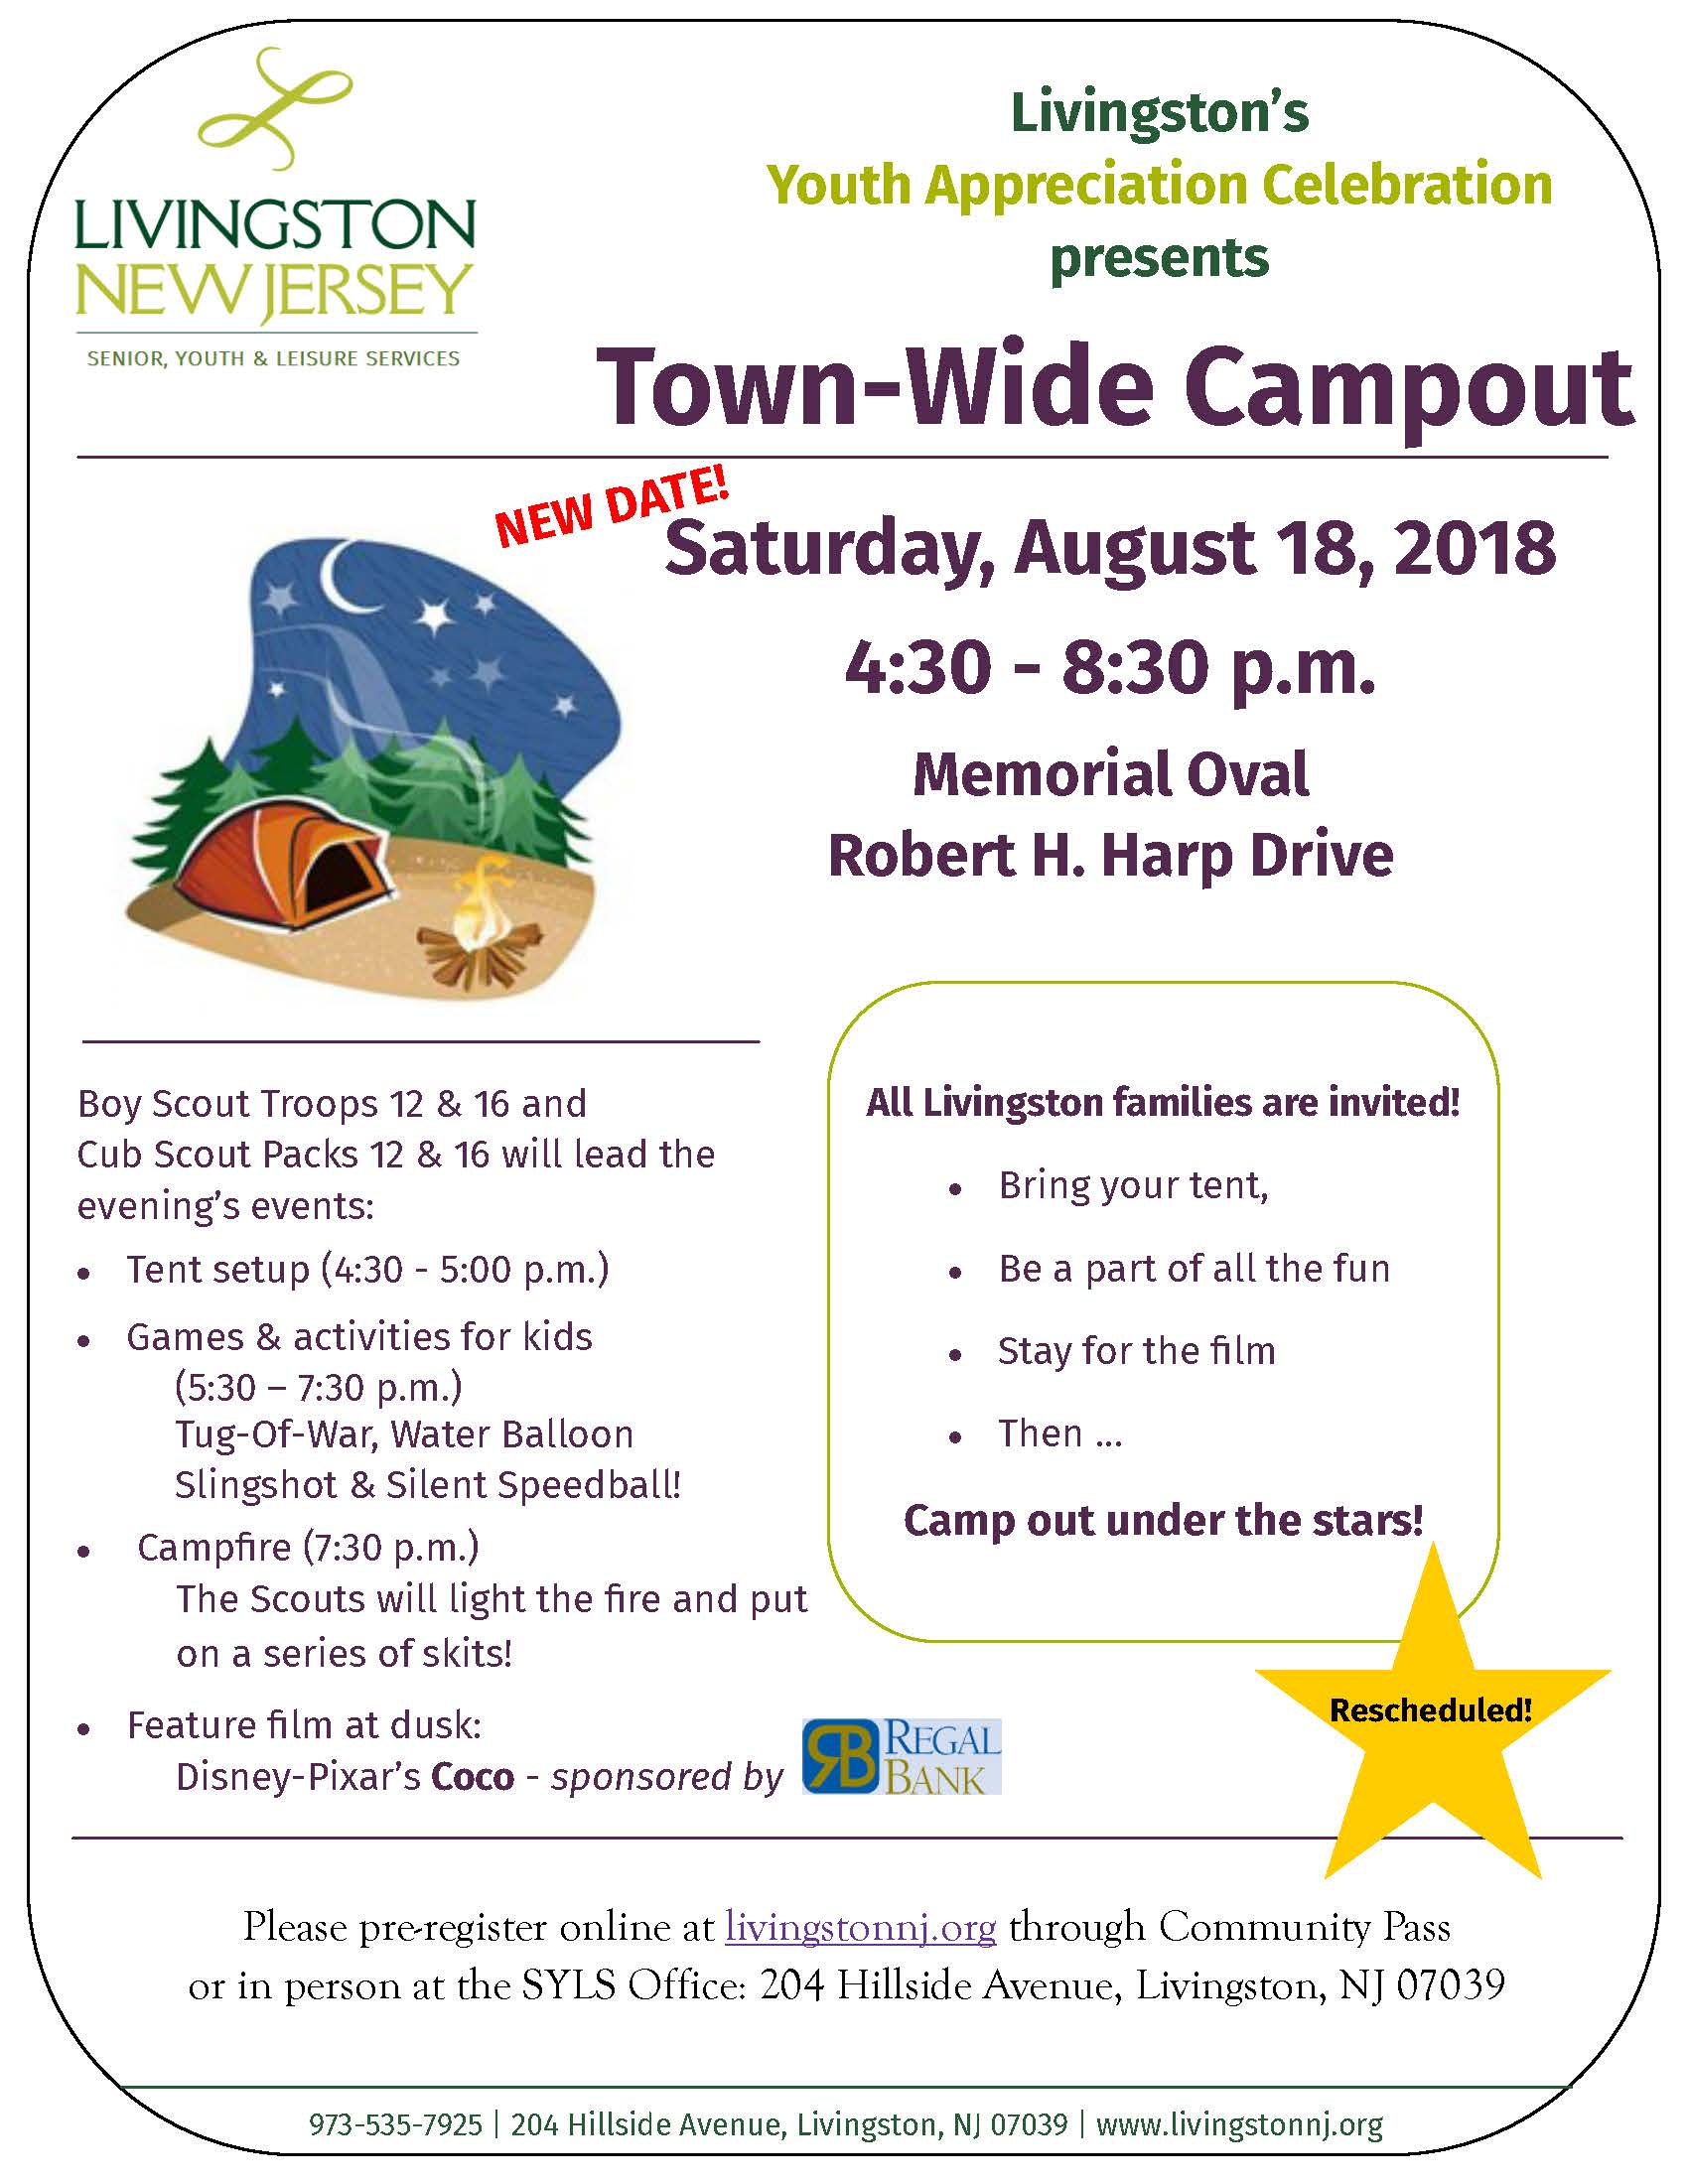 2018 Town-wide Campout